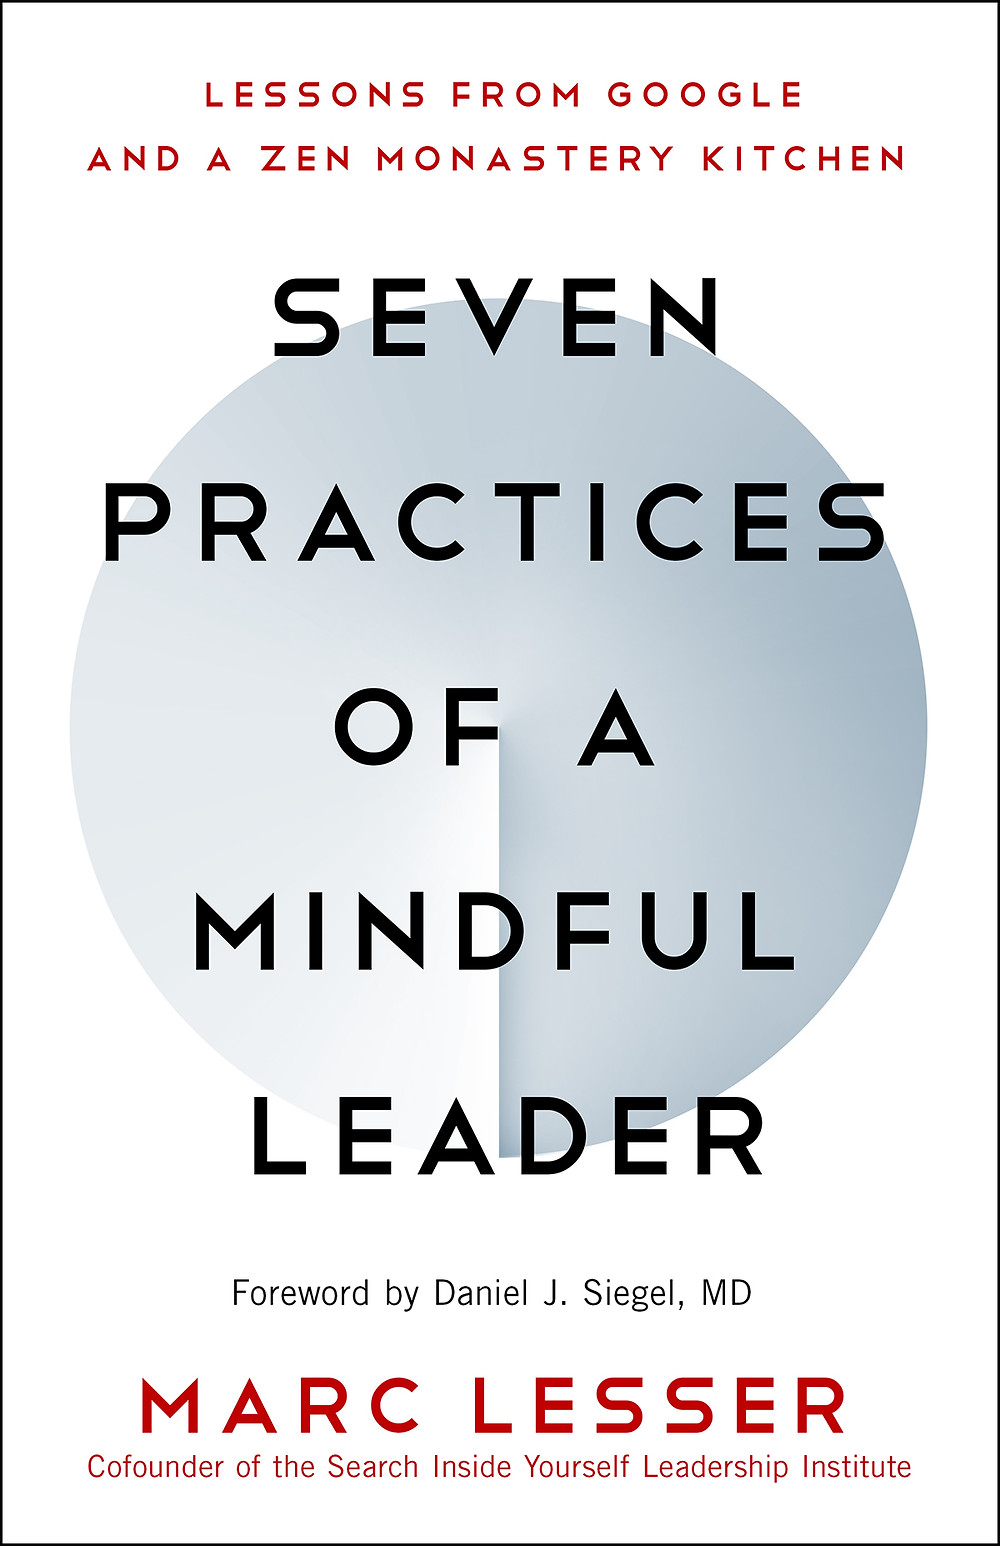 https://www.voiceamerica.com/episode/113214/mindful-leader-retire-by-fire-reaping-what-you-sow